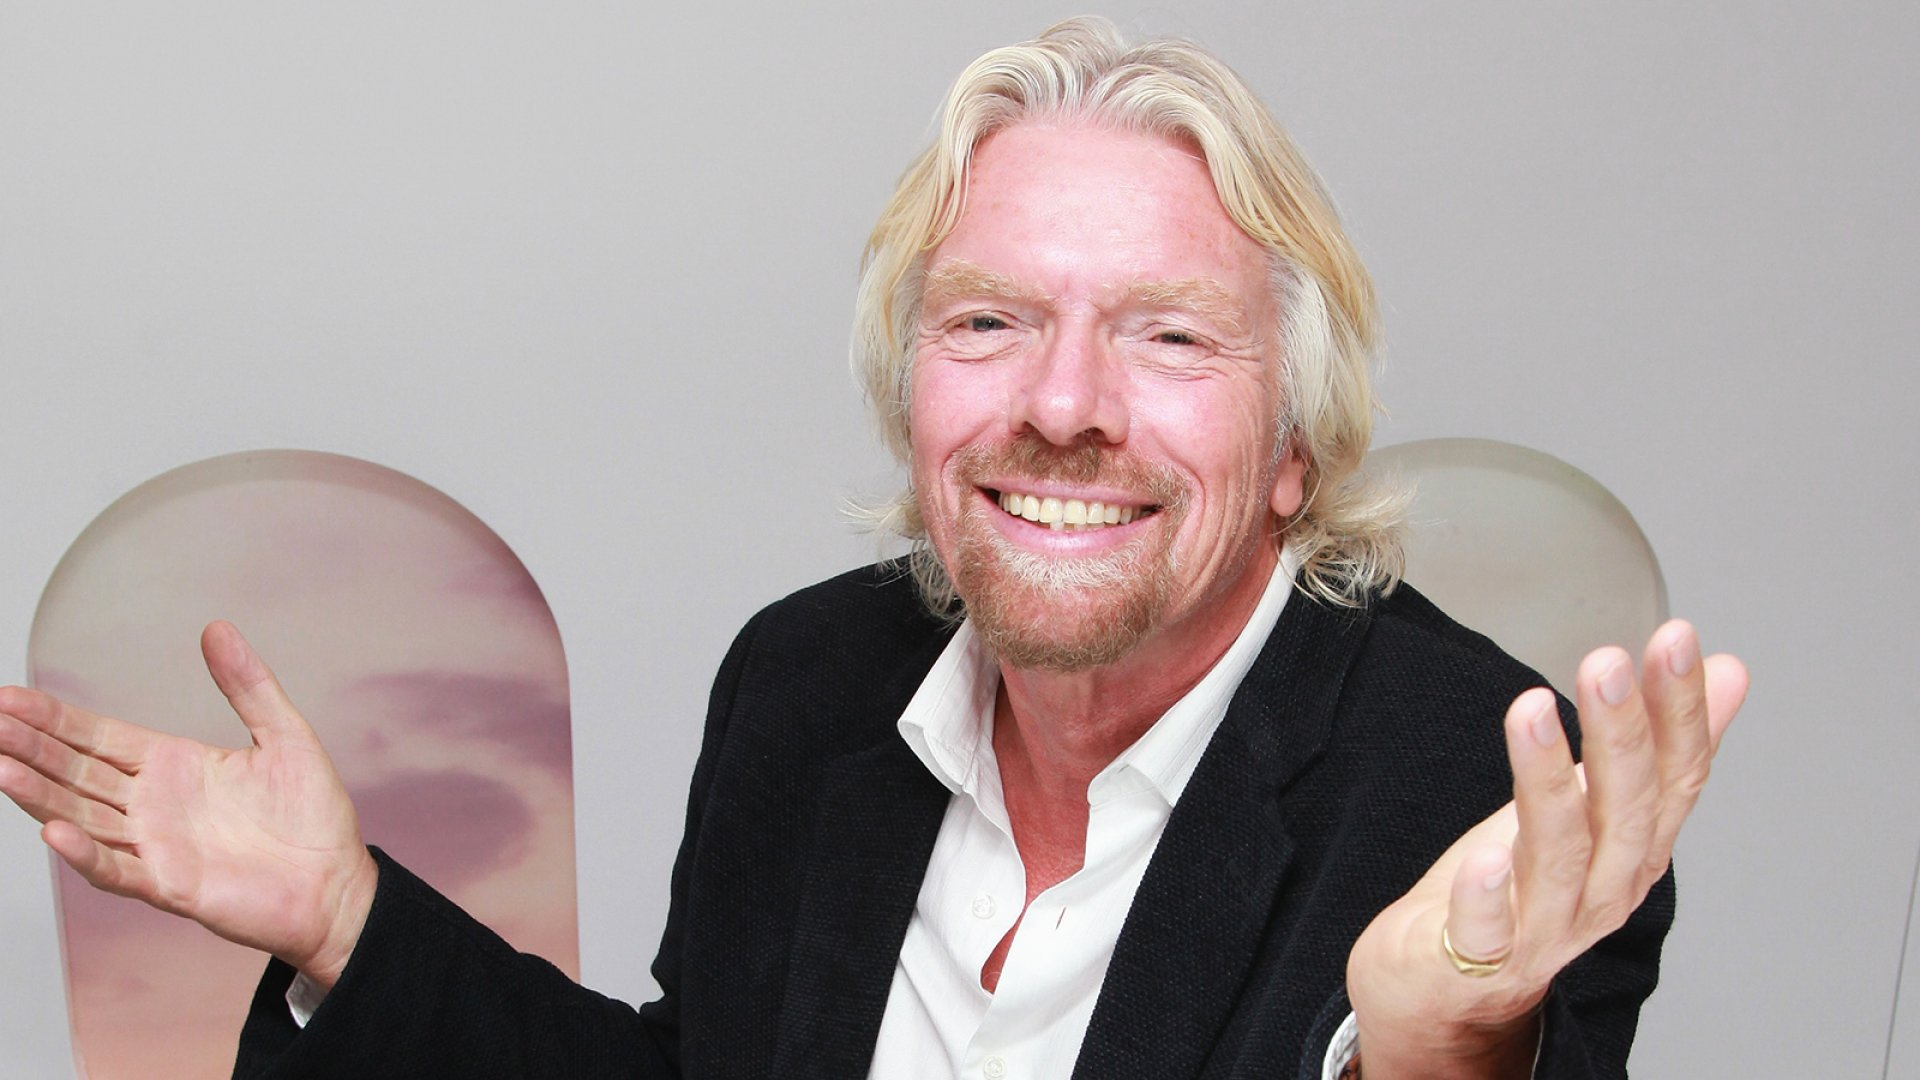 7 Failures That Helped Richard Branson Become a Multibillionaire